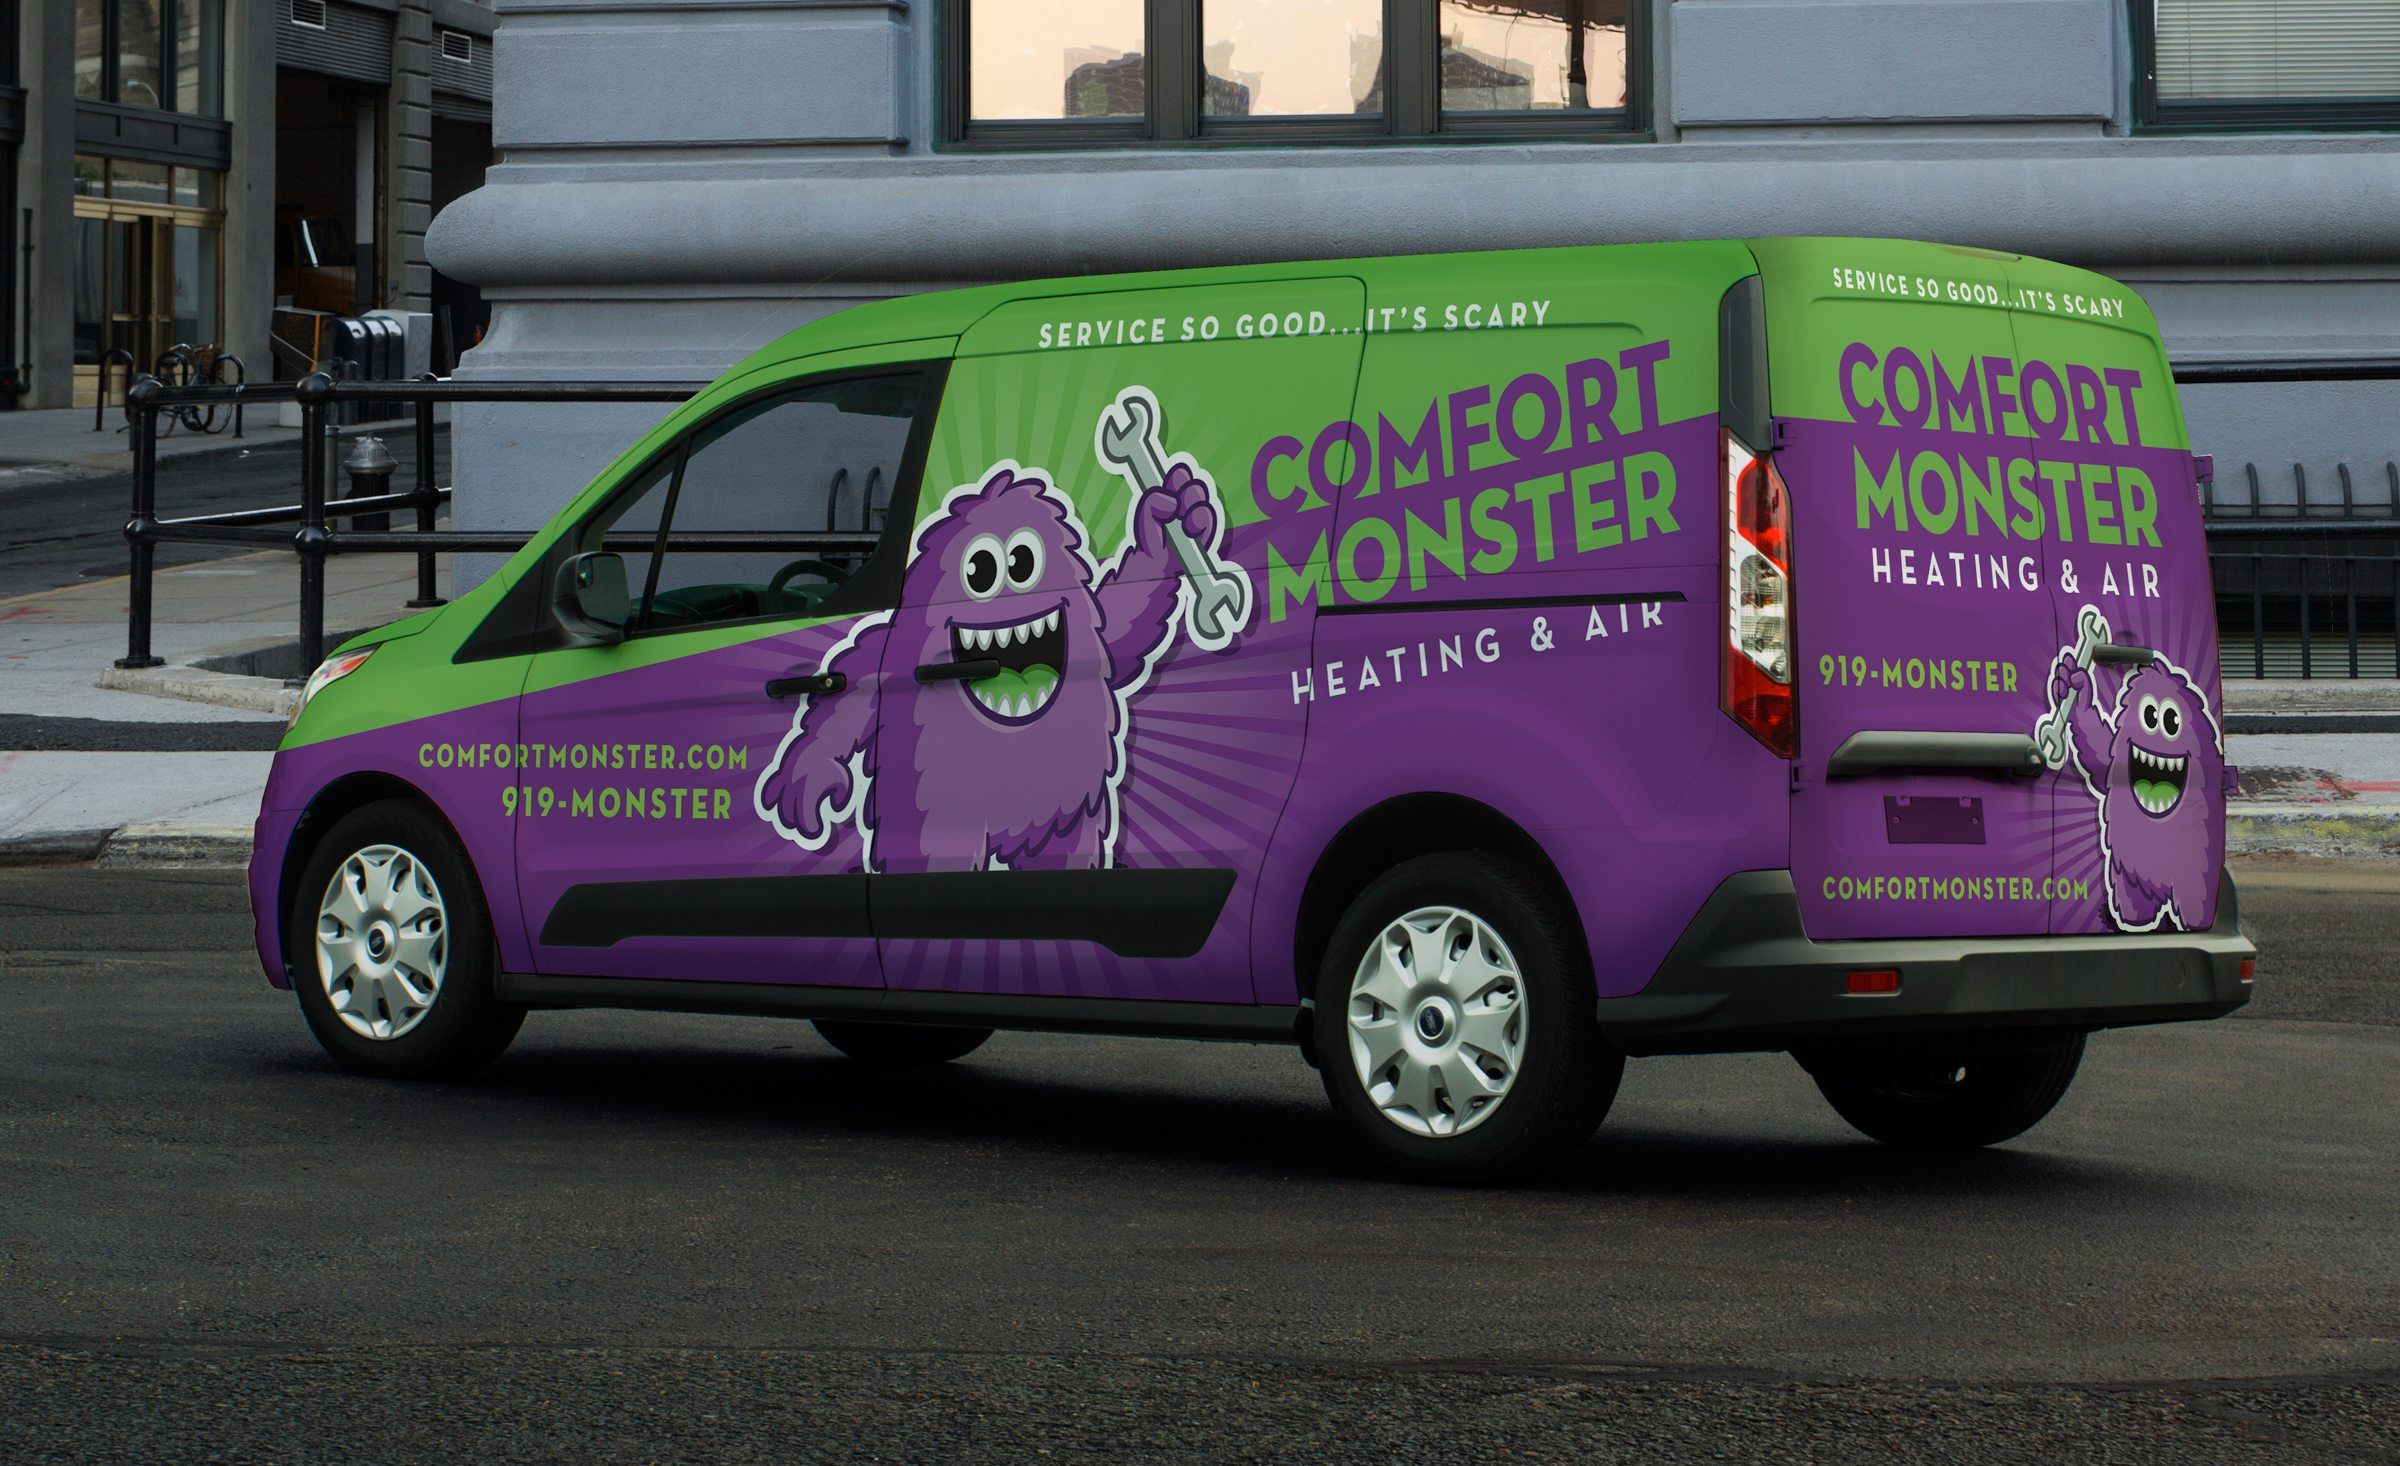 Comfort Monster Heating Air Kickcharge Creative Cool Trucks